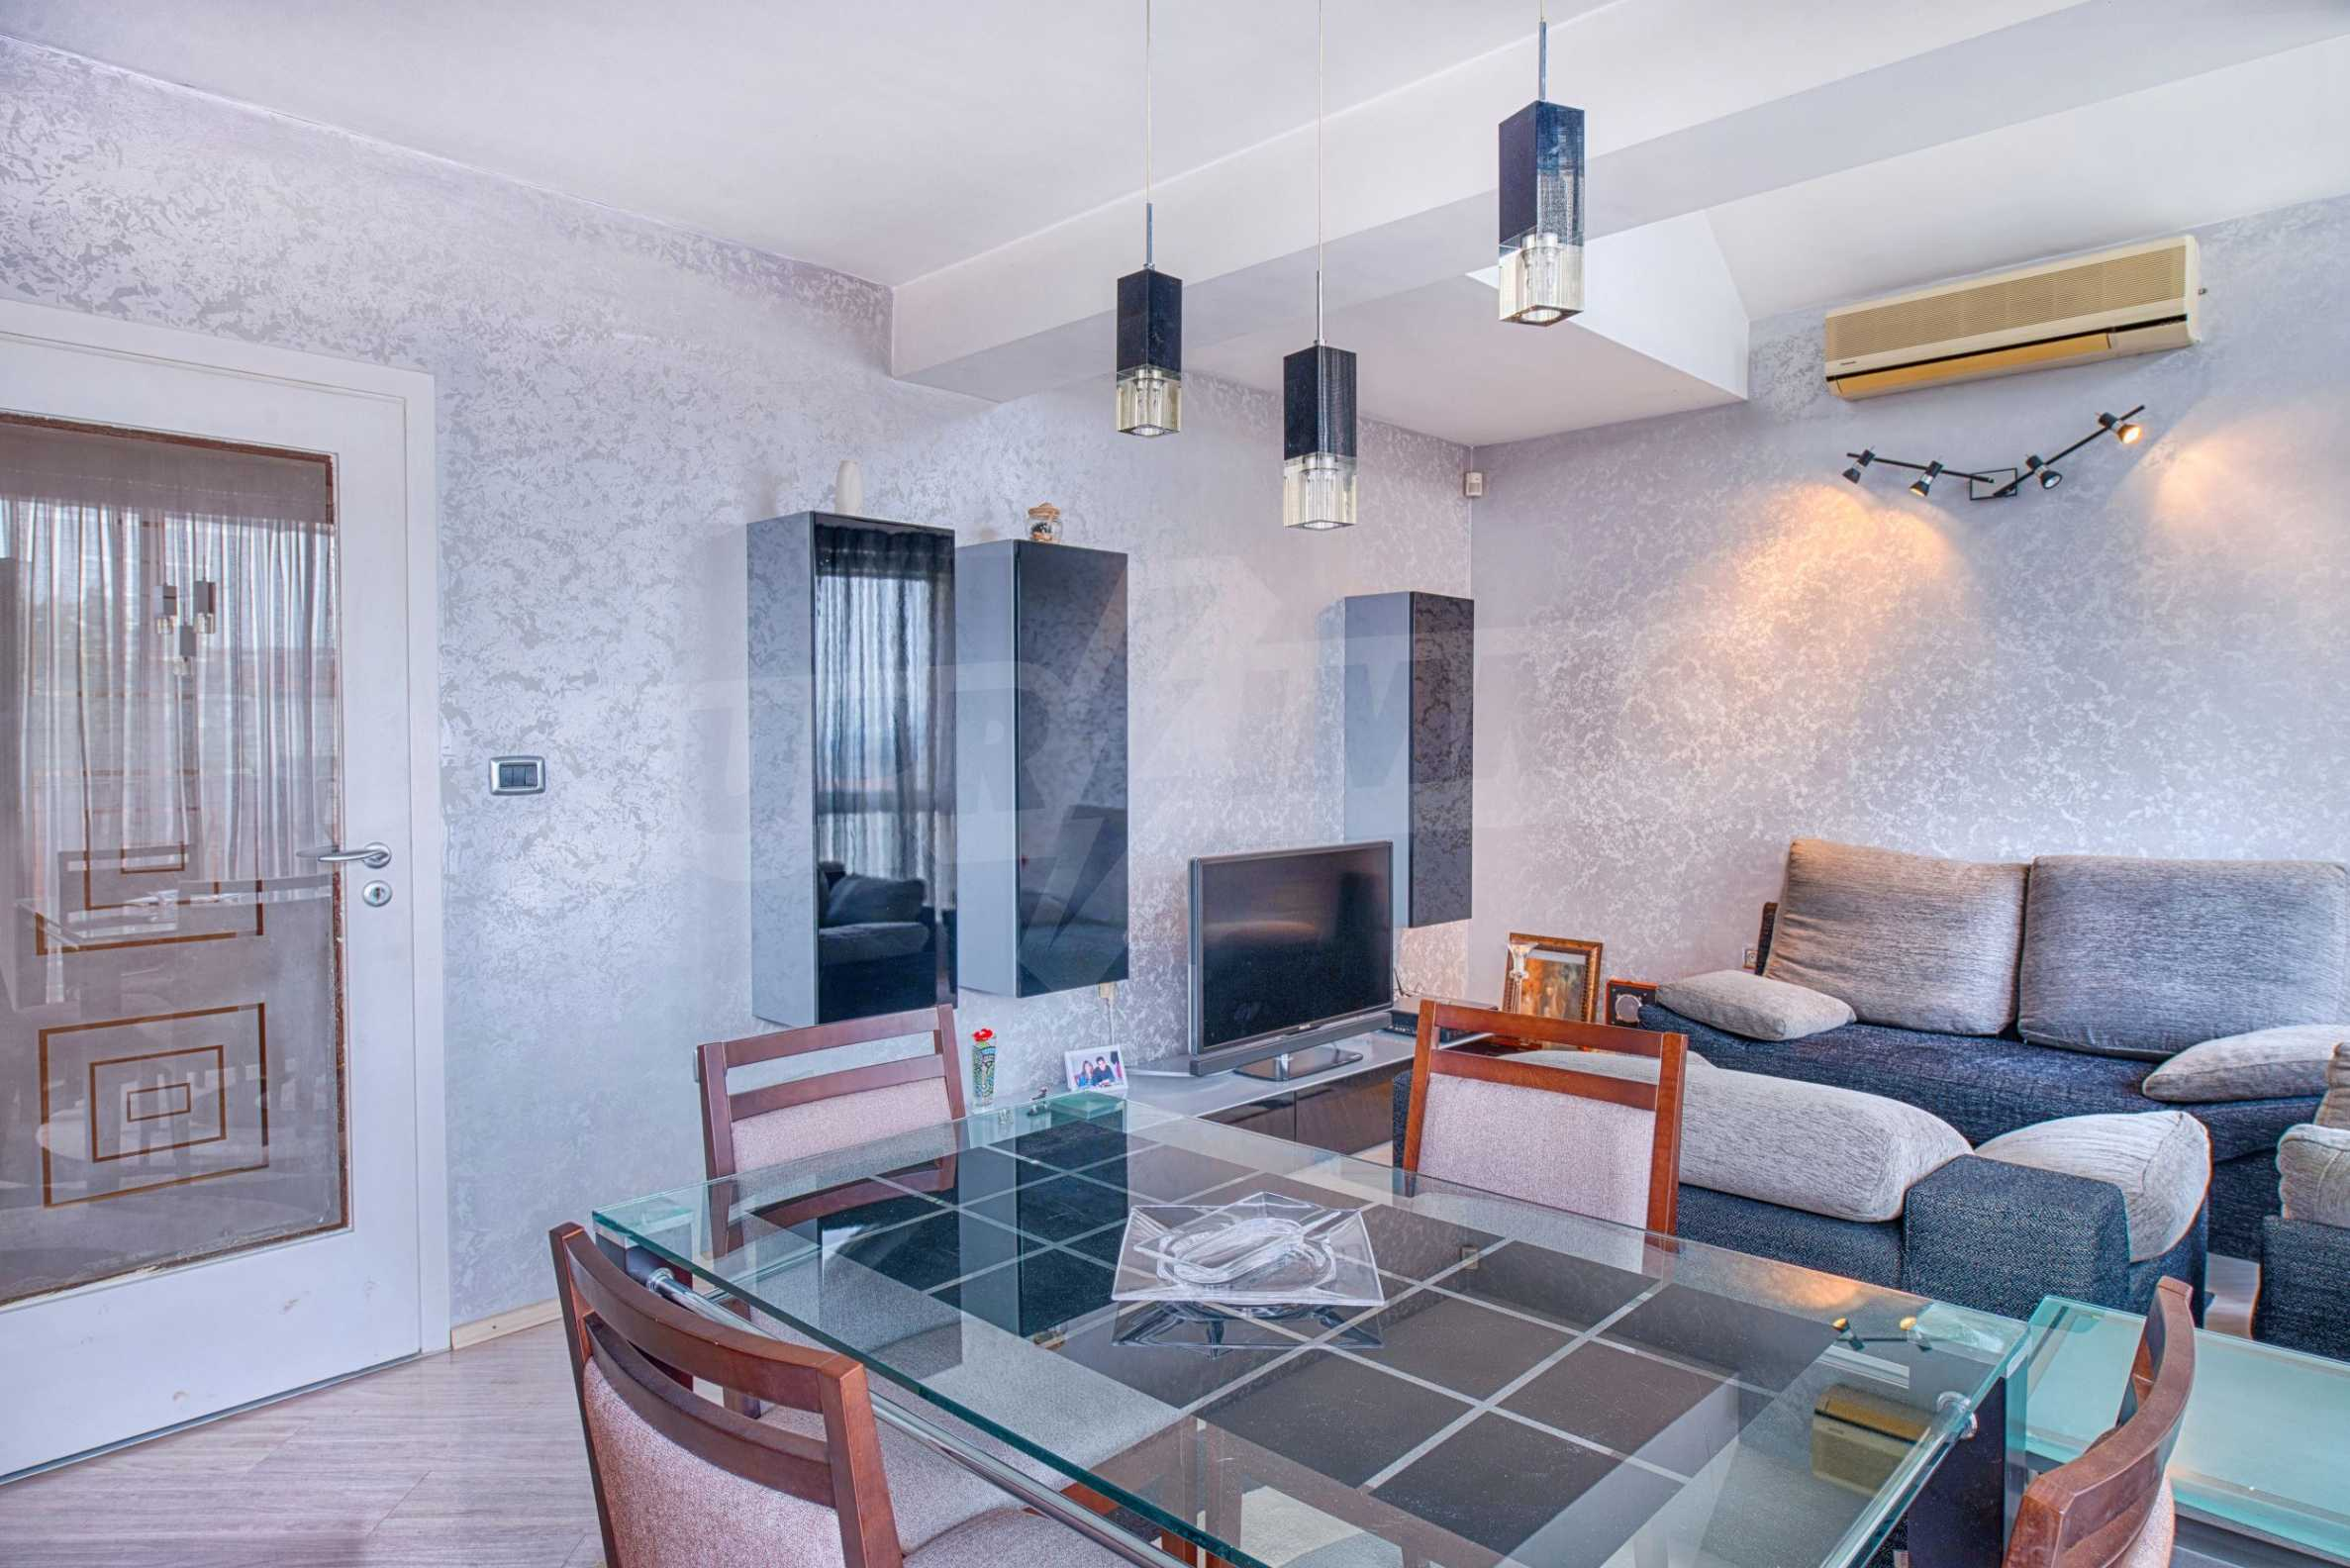 Two-level penthouse for sale in Varna, Bulgaria - Sales - two-level penthouse.